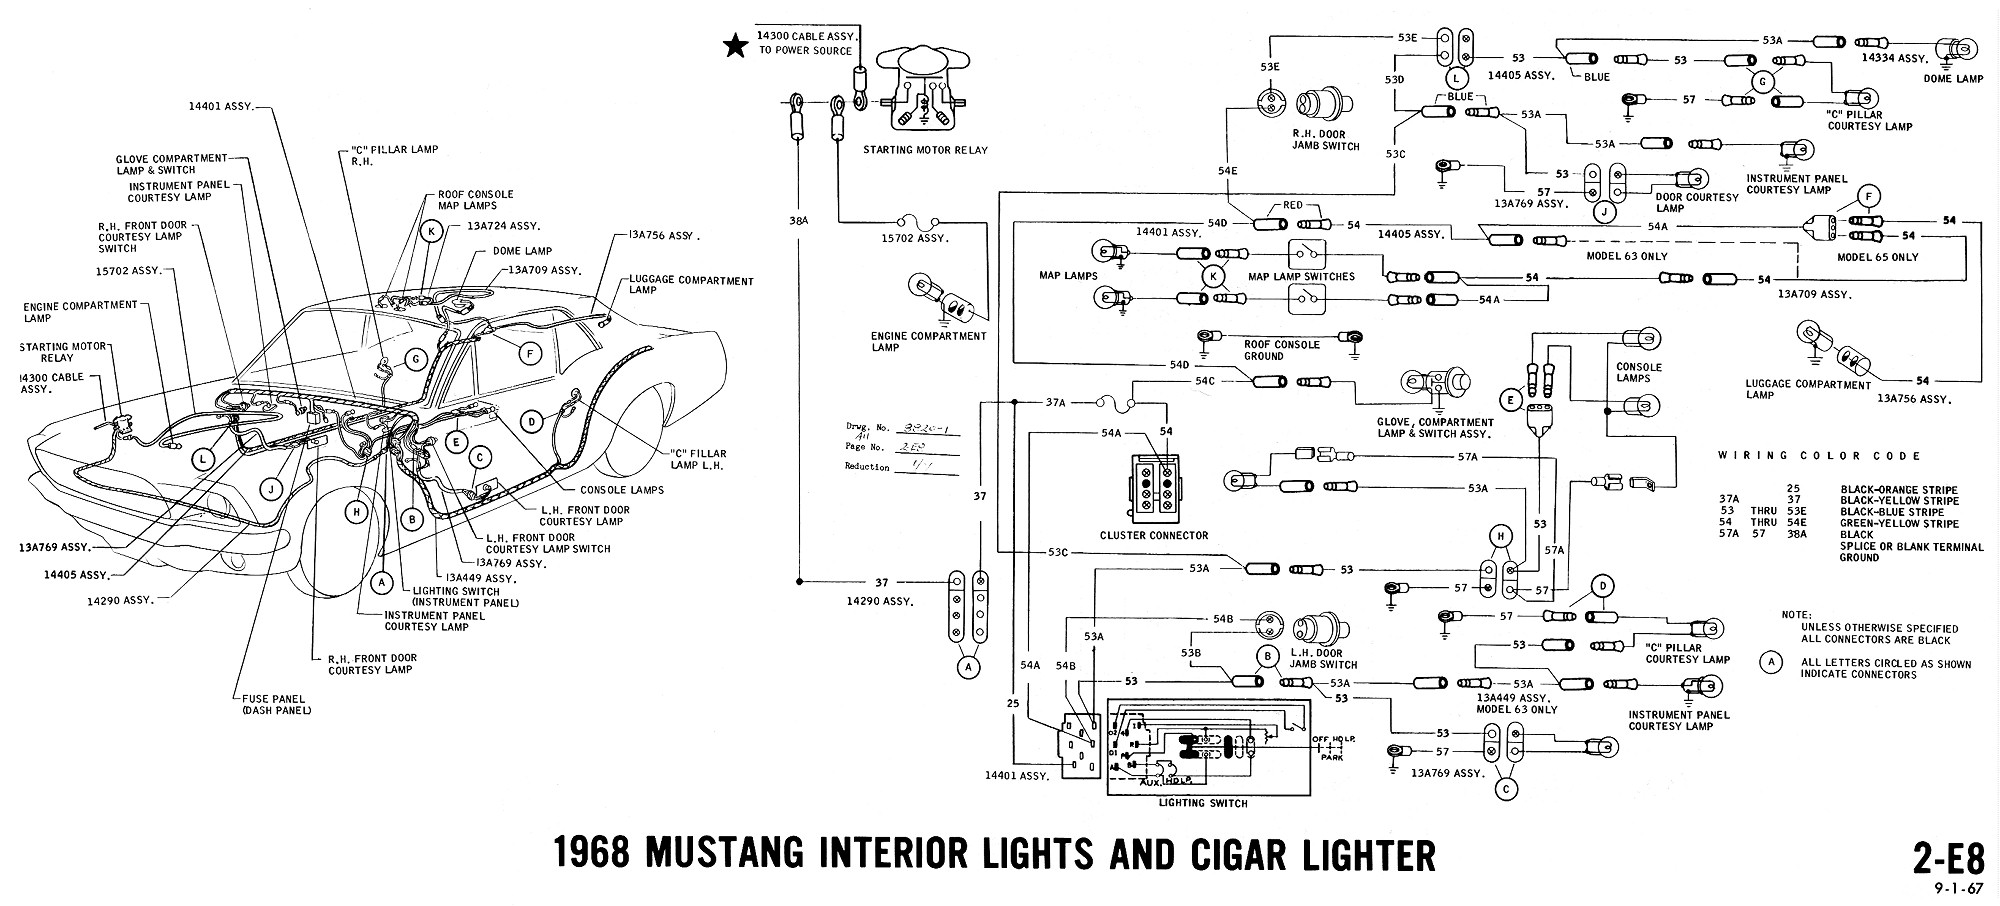 hight resolution of 1968 ford mustang wiring harness schematic wiring diagram 1968 ford mustang wiring diagram schematic